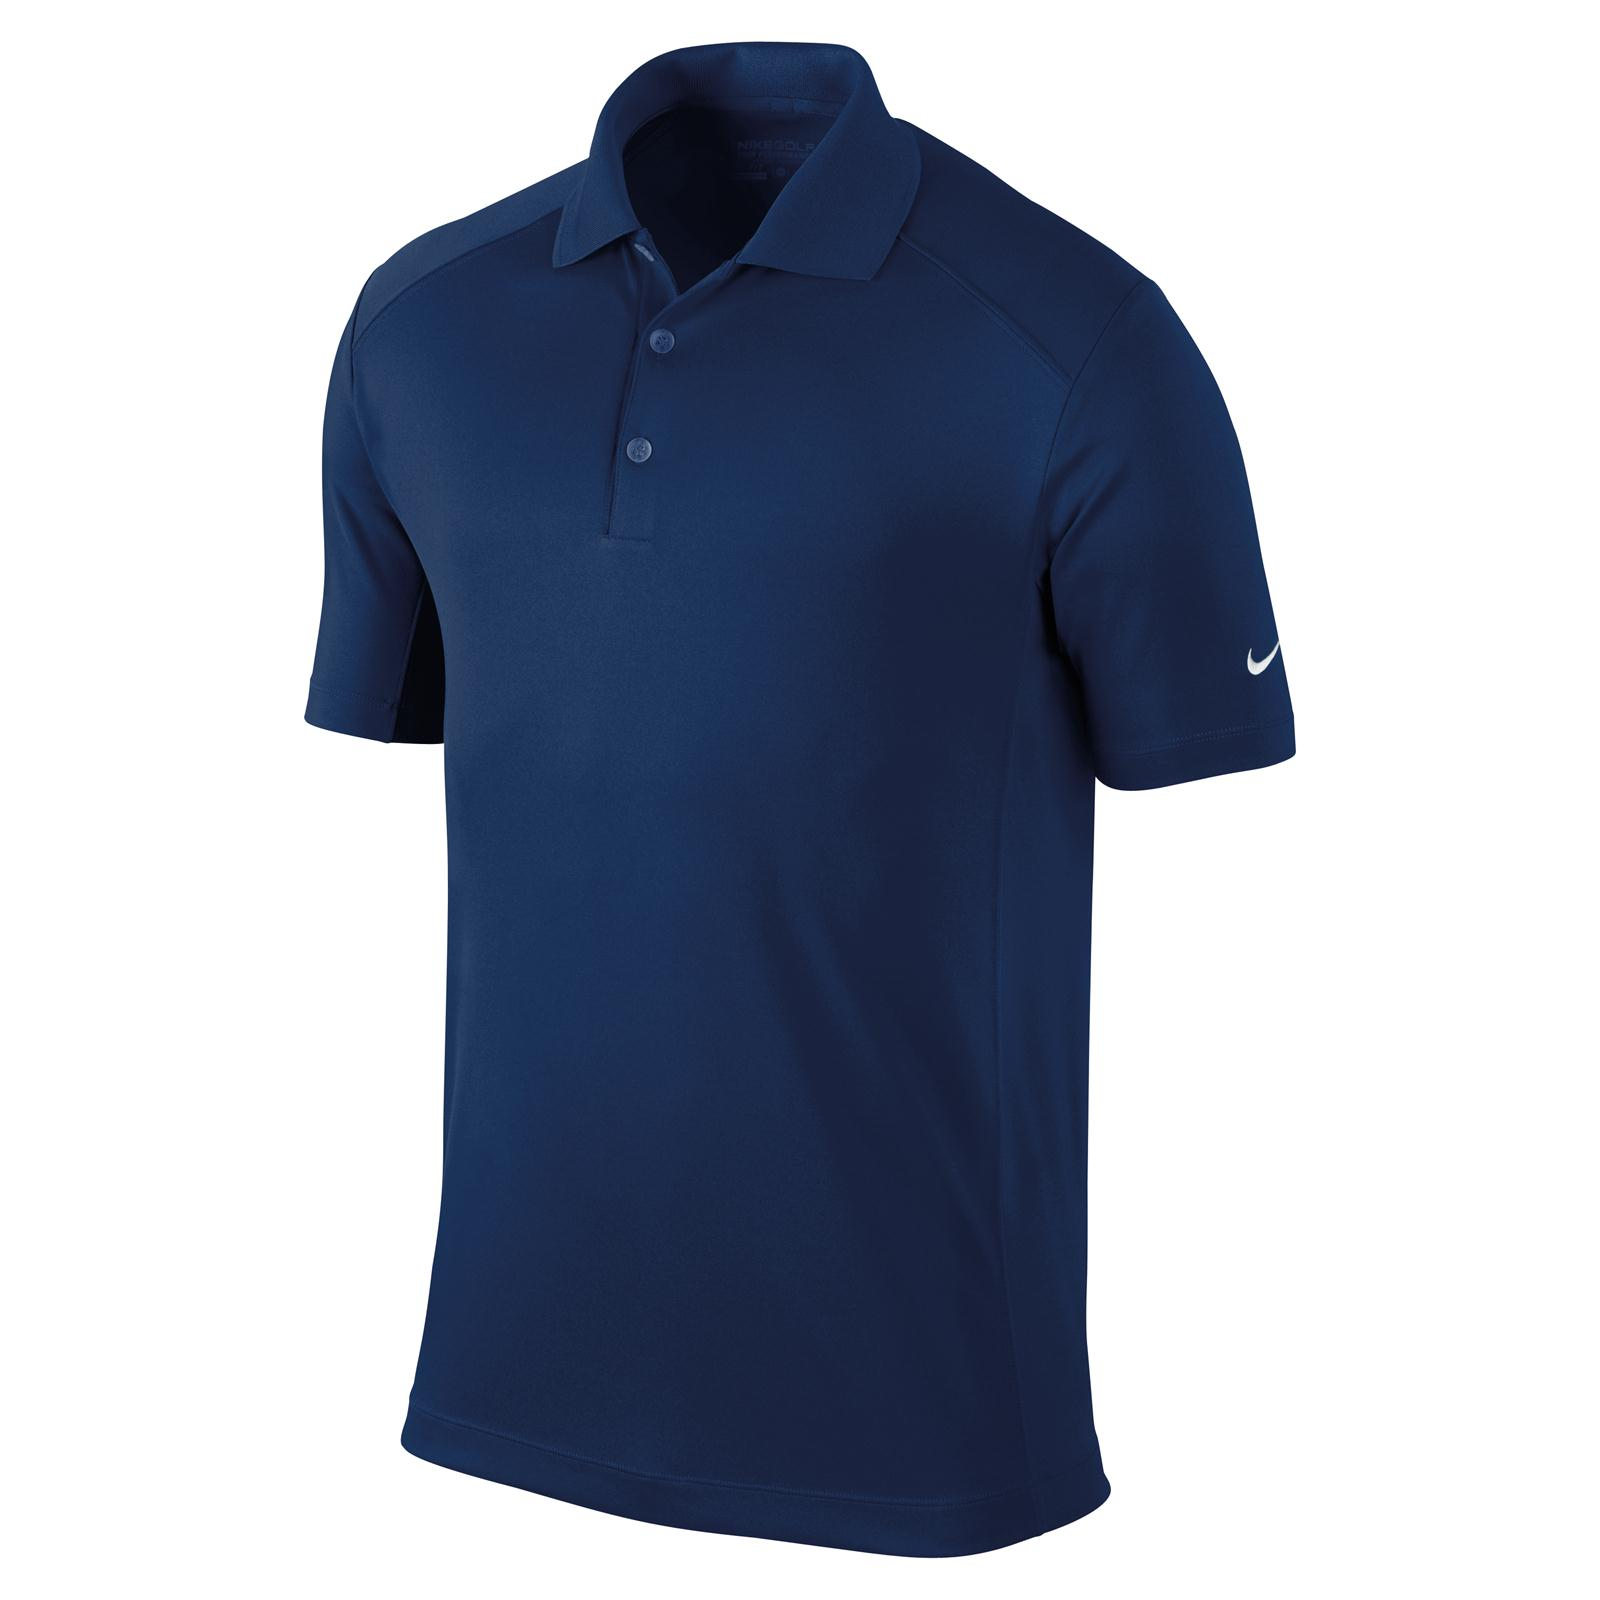 New nike sports mens golf casual victory polo shirt 6 for Womens golf shirts xxl